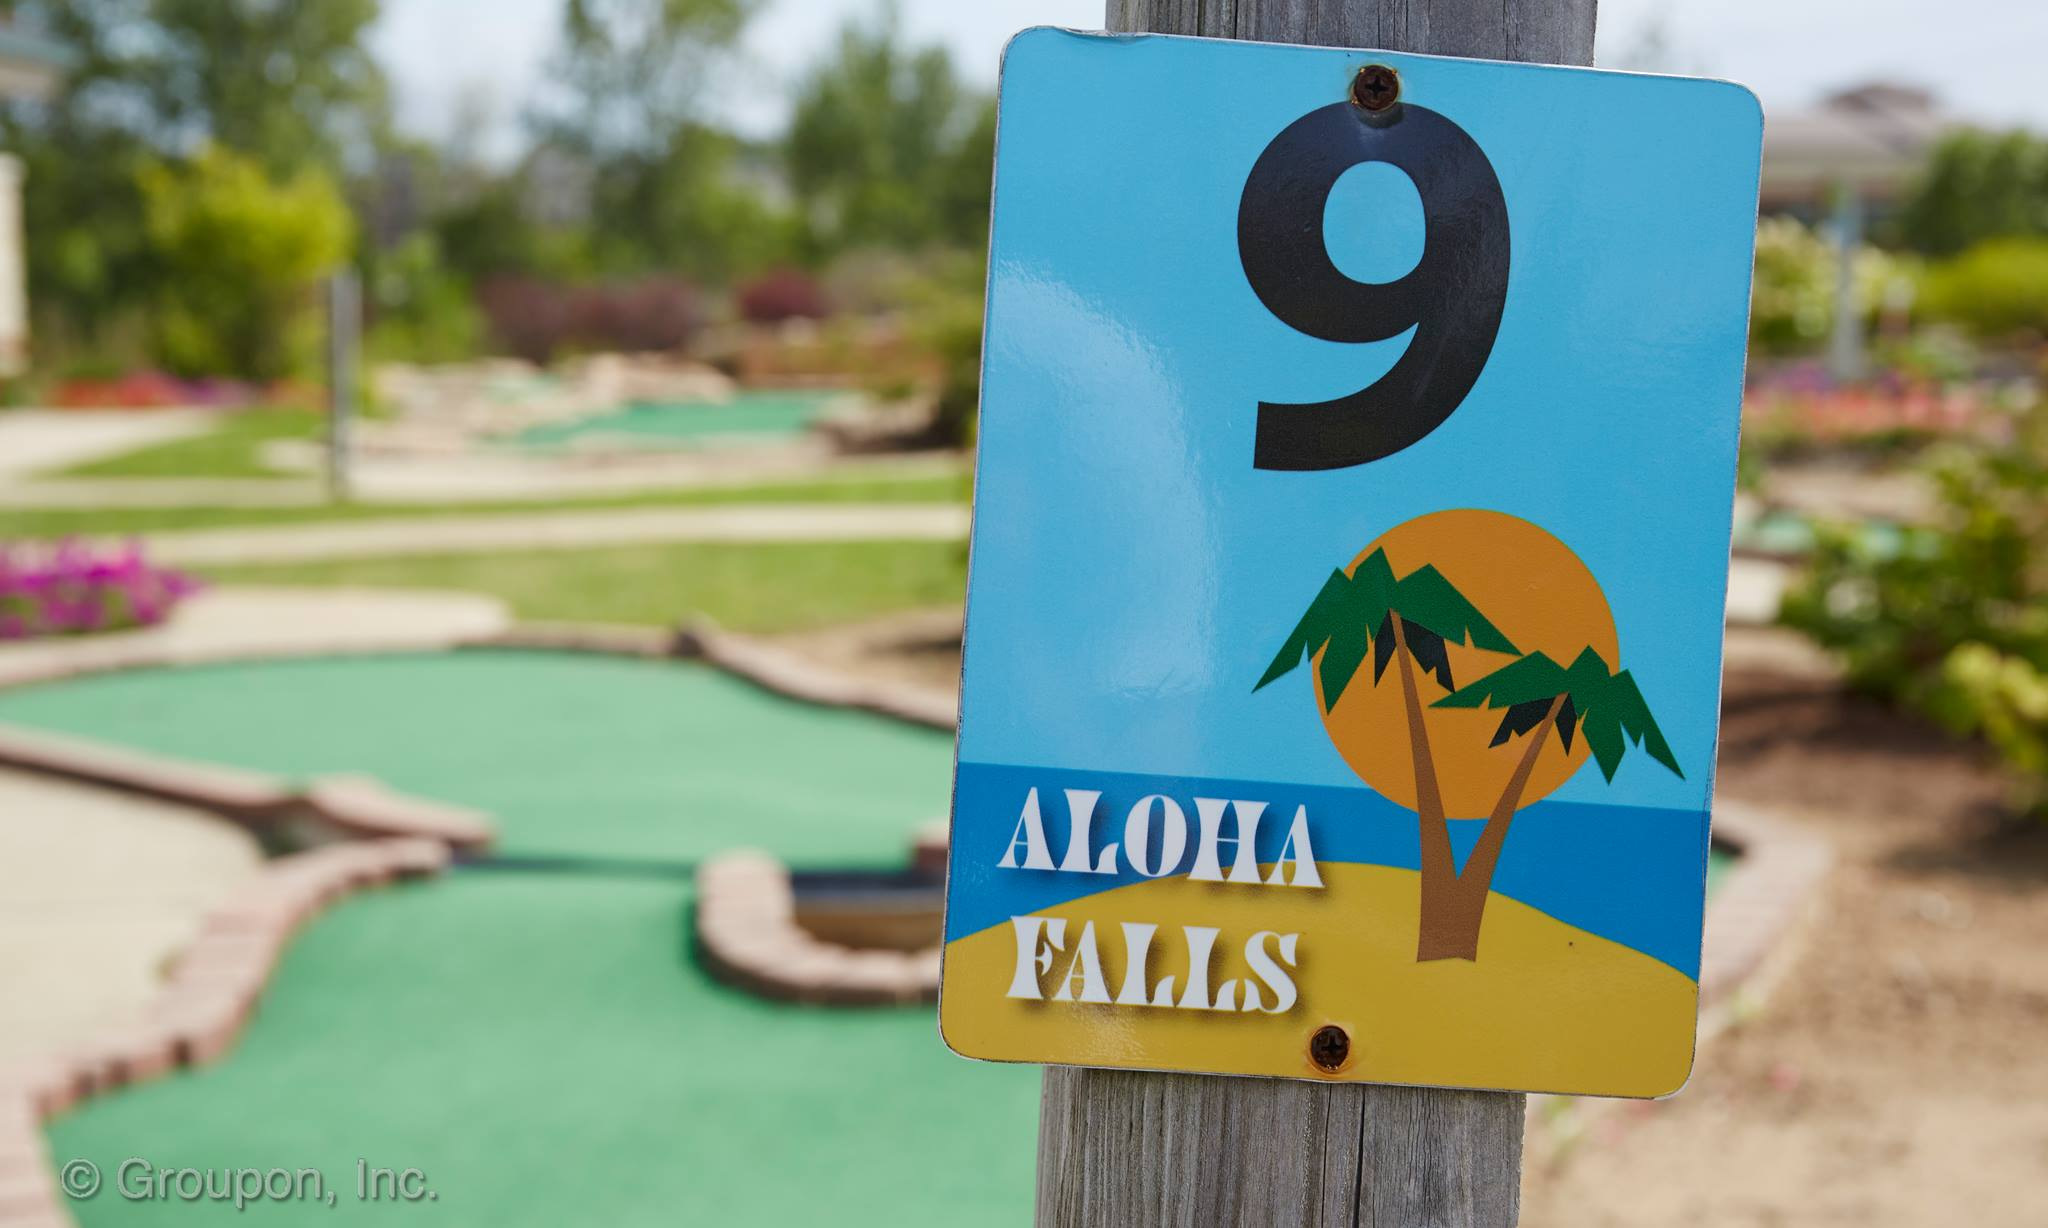 Aloha Falls Miniature Golf & Games